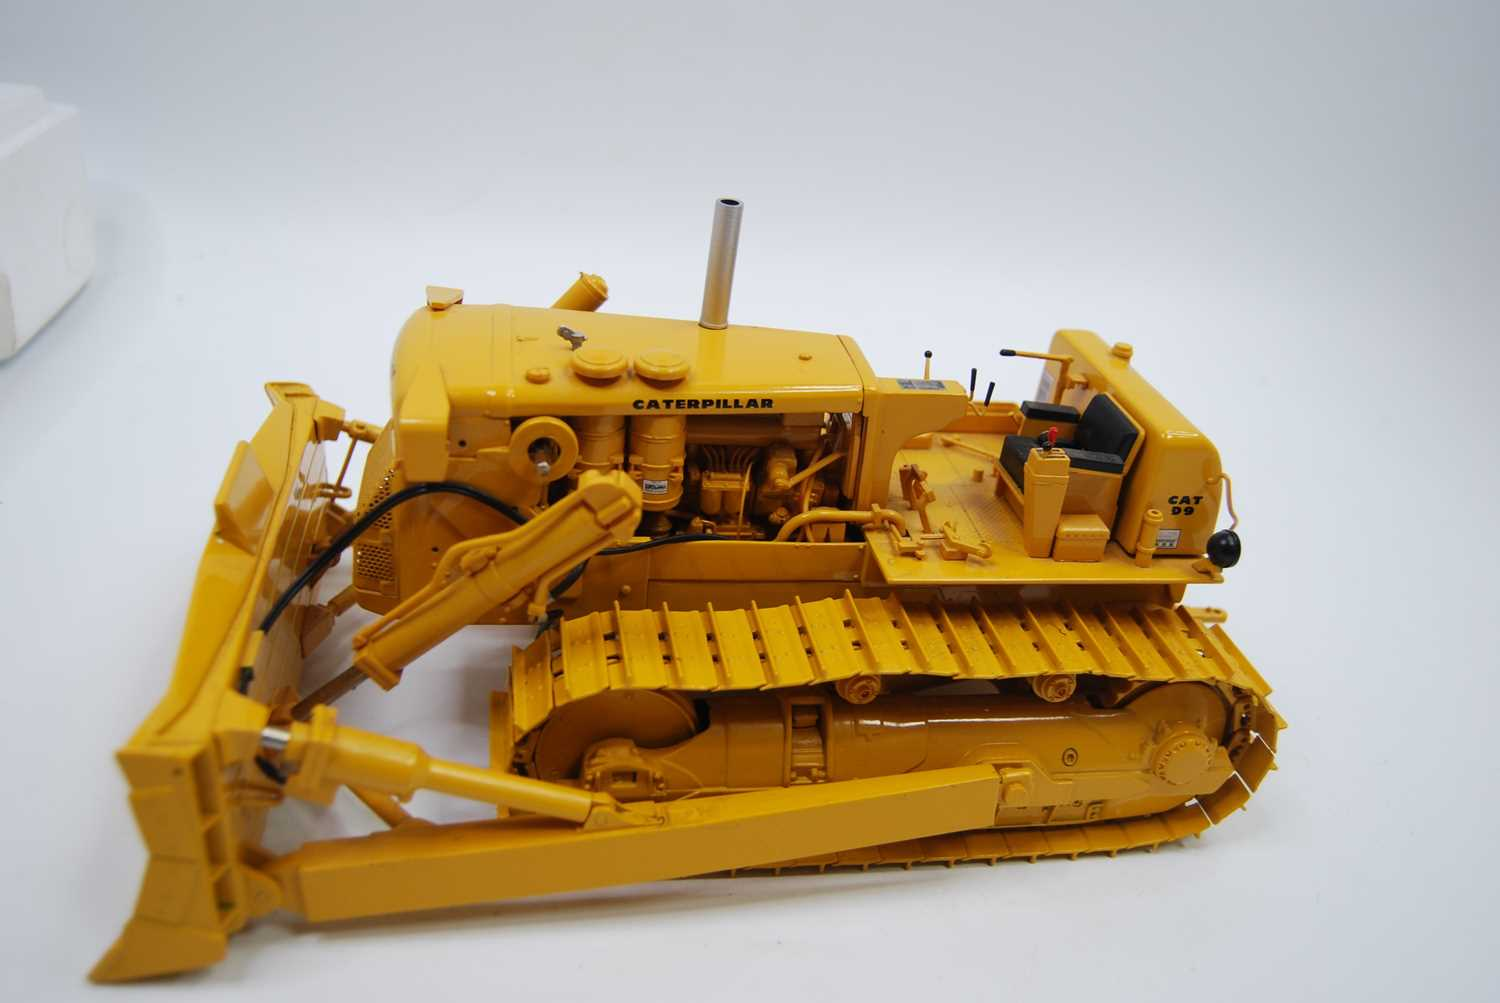 A First Gear Model No. 49-3172, boxed 1/25 scale diecast model of a Caterpillar D9E track type - Image 10 of 10